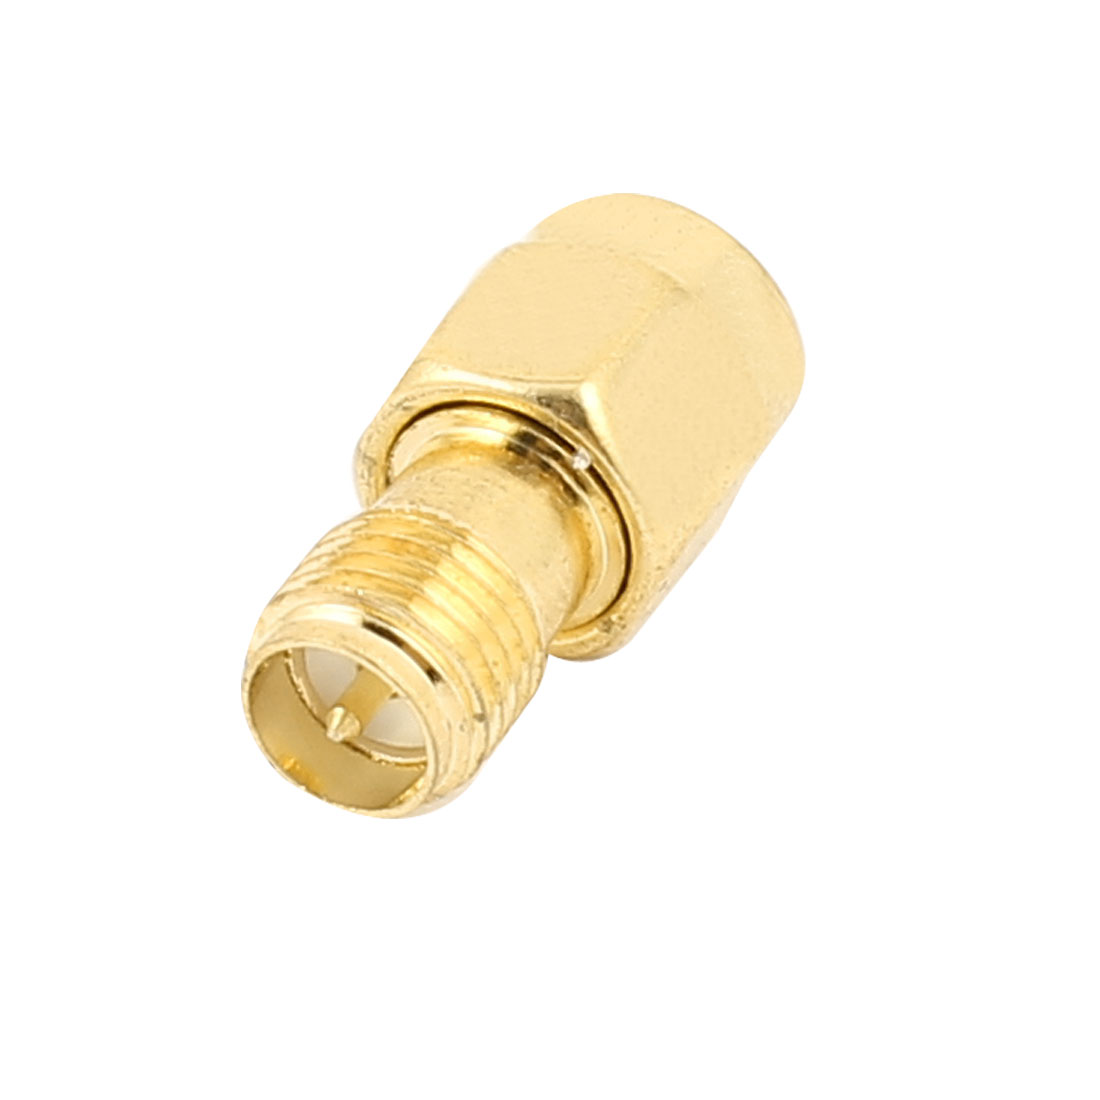 Thread Male SMA to Male RP-SMA Plug RF Coaxial Adapter Connector